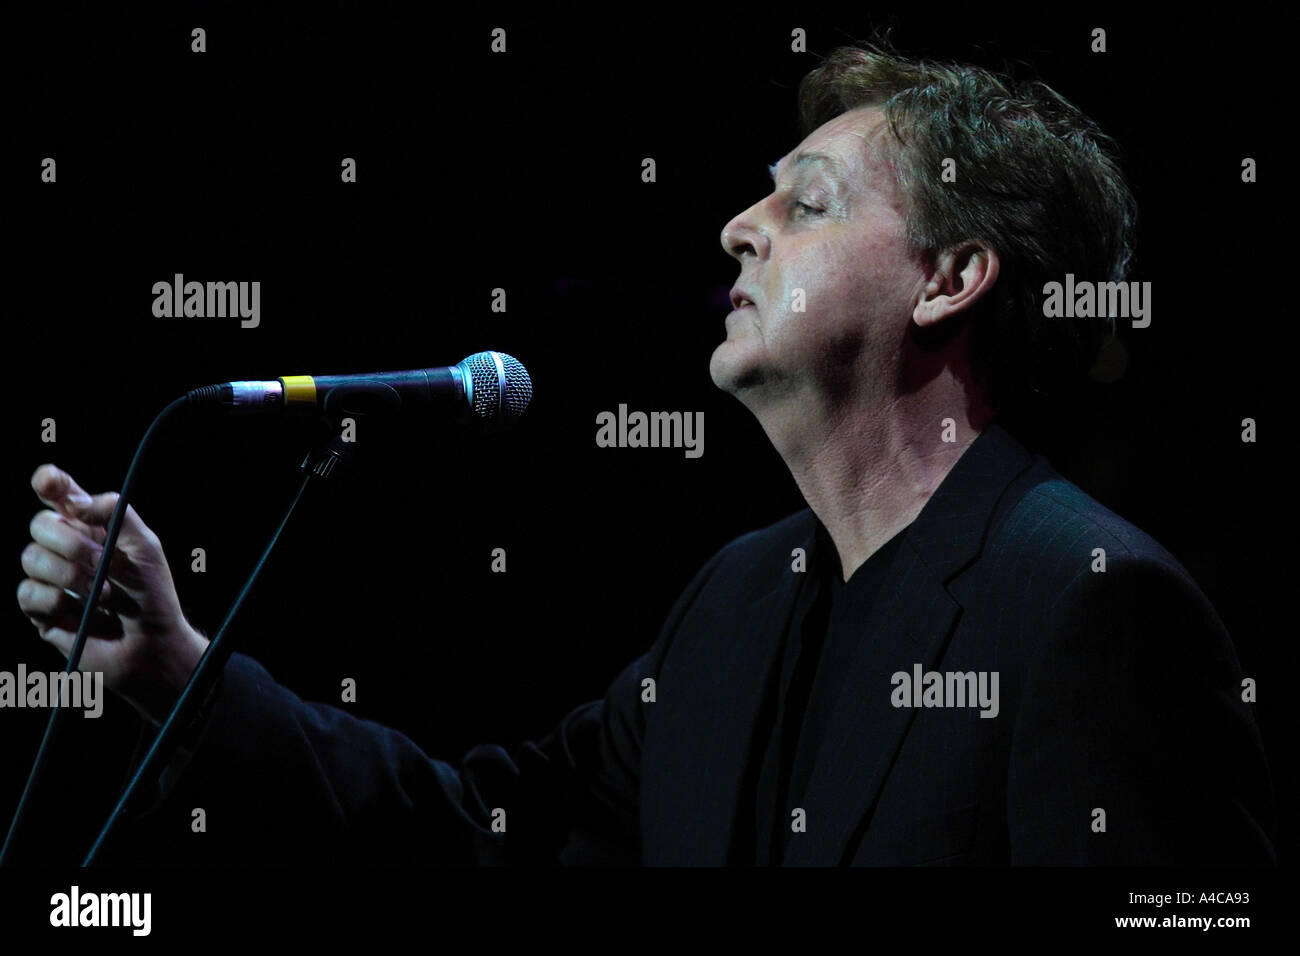 Paul McCartney sings Yesterday as a tribute to George Harrison at a Tribute concert Empire Theatre Liverpool 2002 - Stock Image